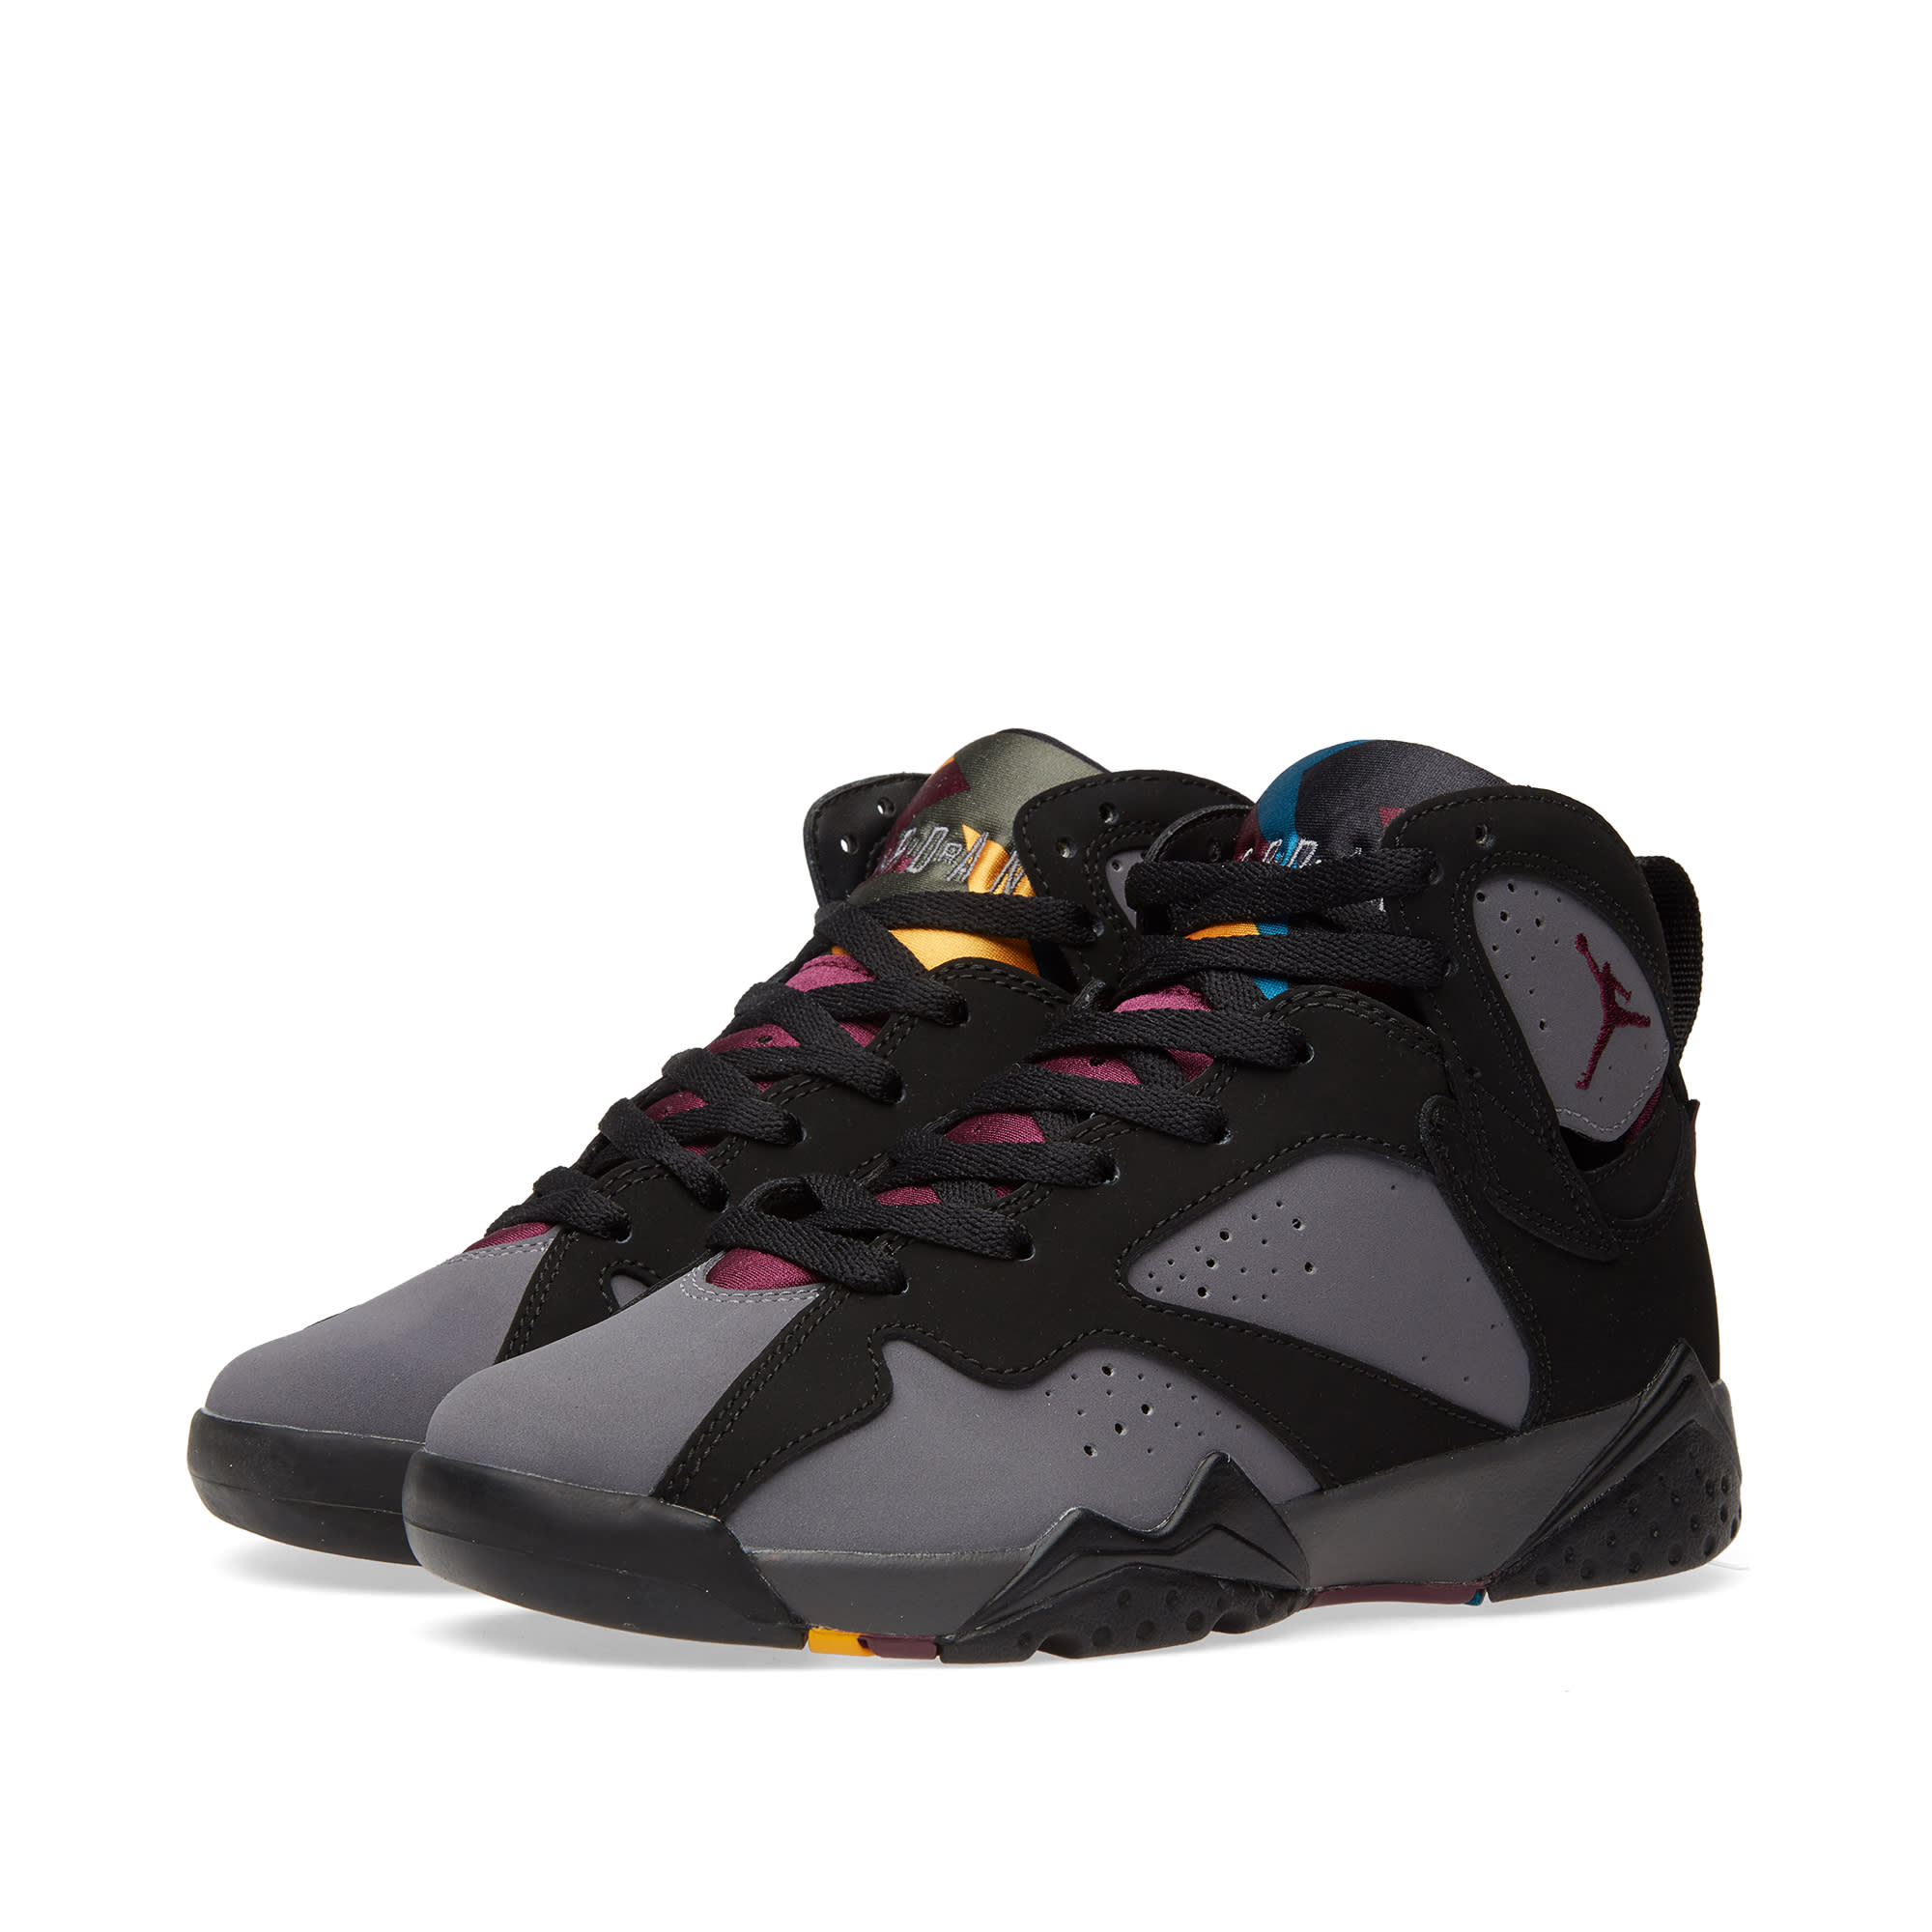 buy popular 13cfd d8195 Nike Air Jordan VII Retro BG Black, Bordeaux   Graphite   END.